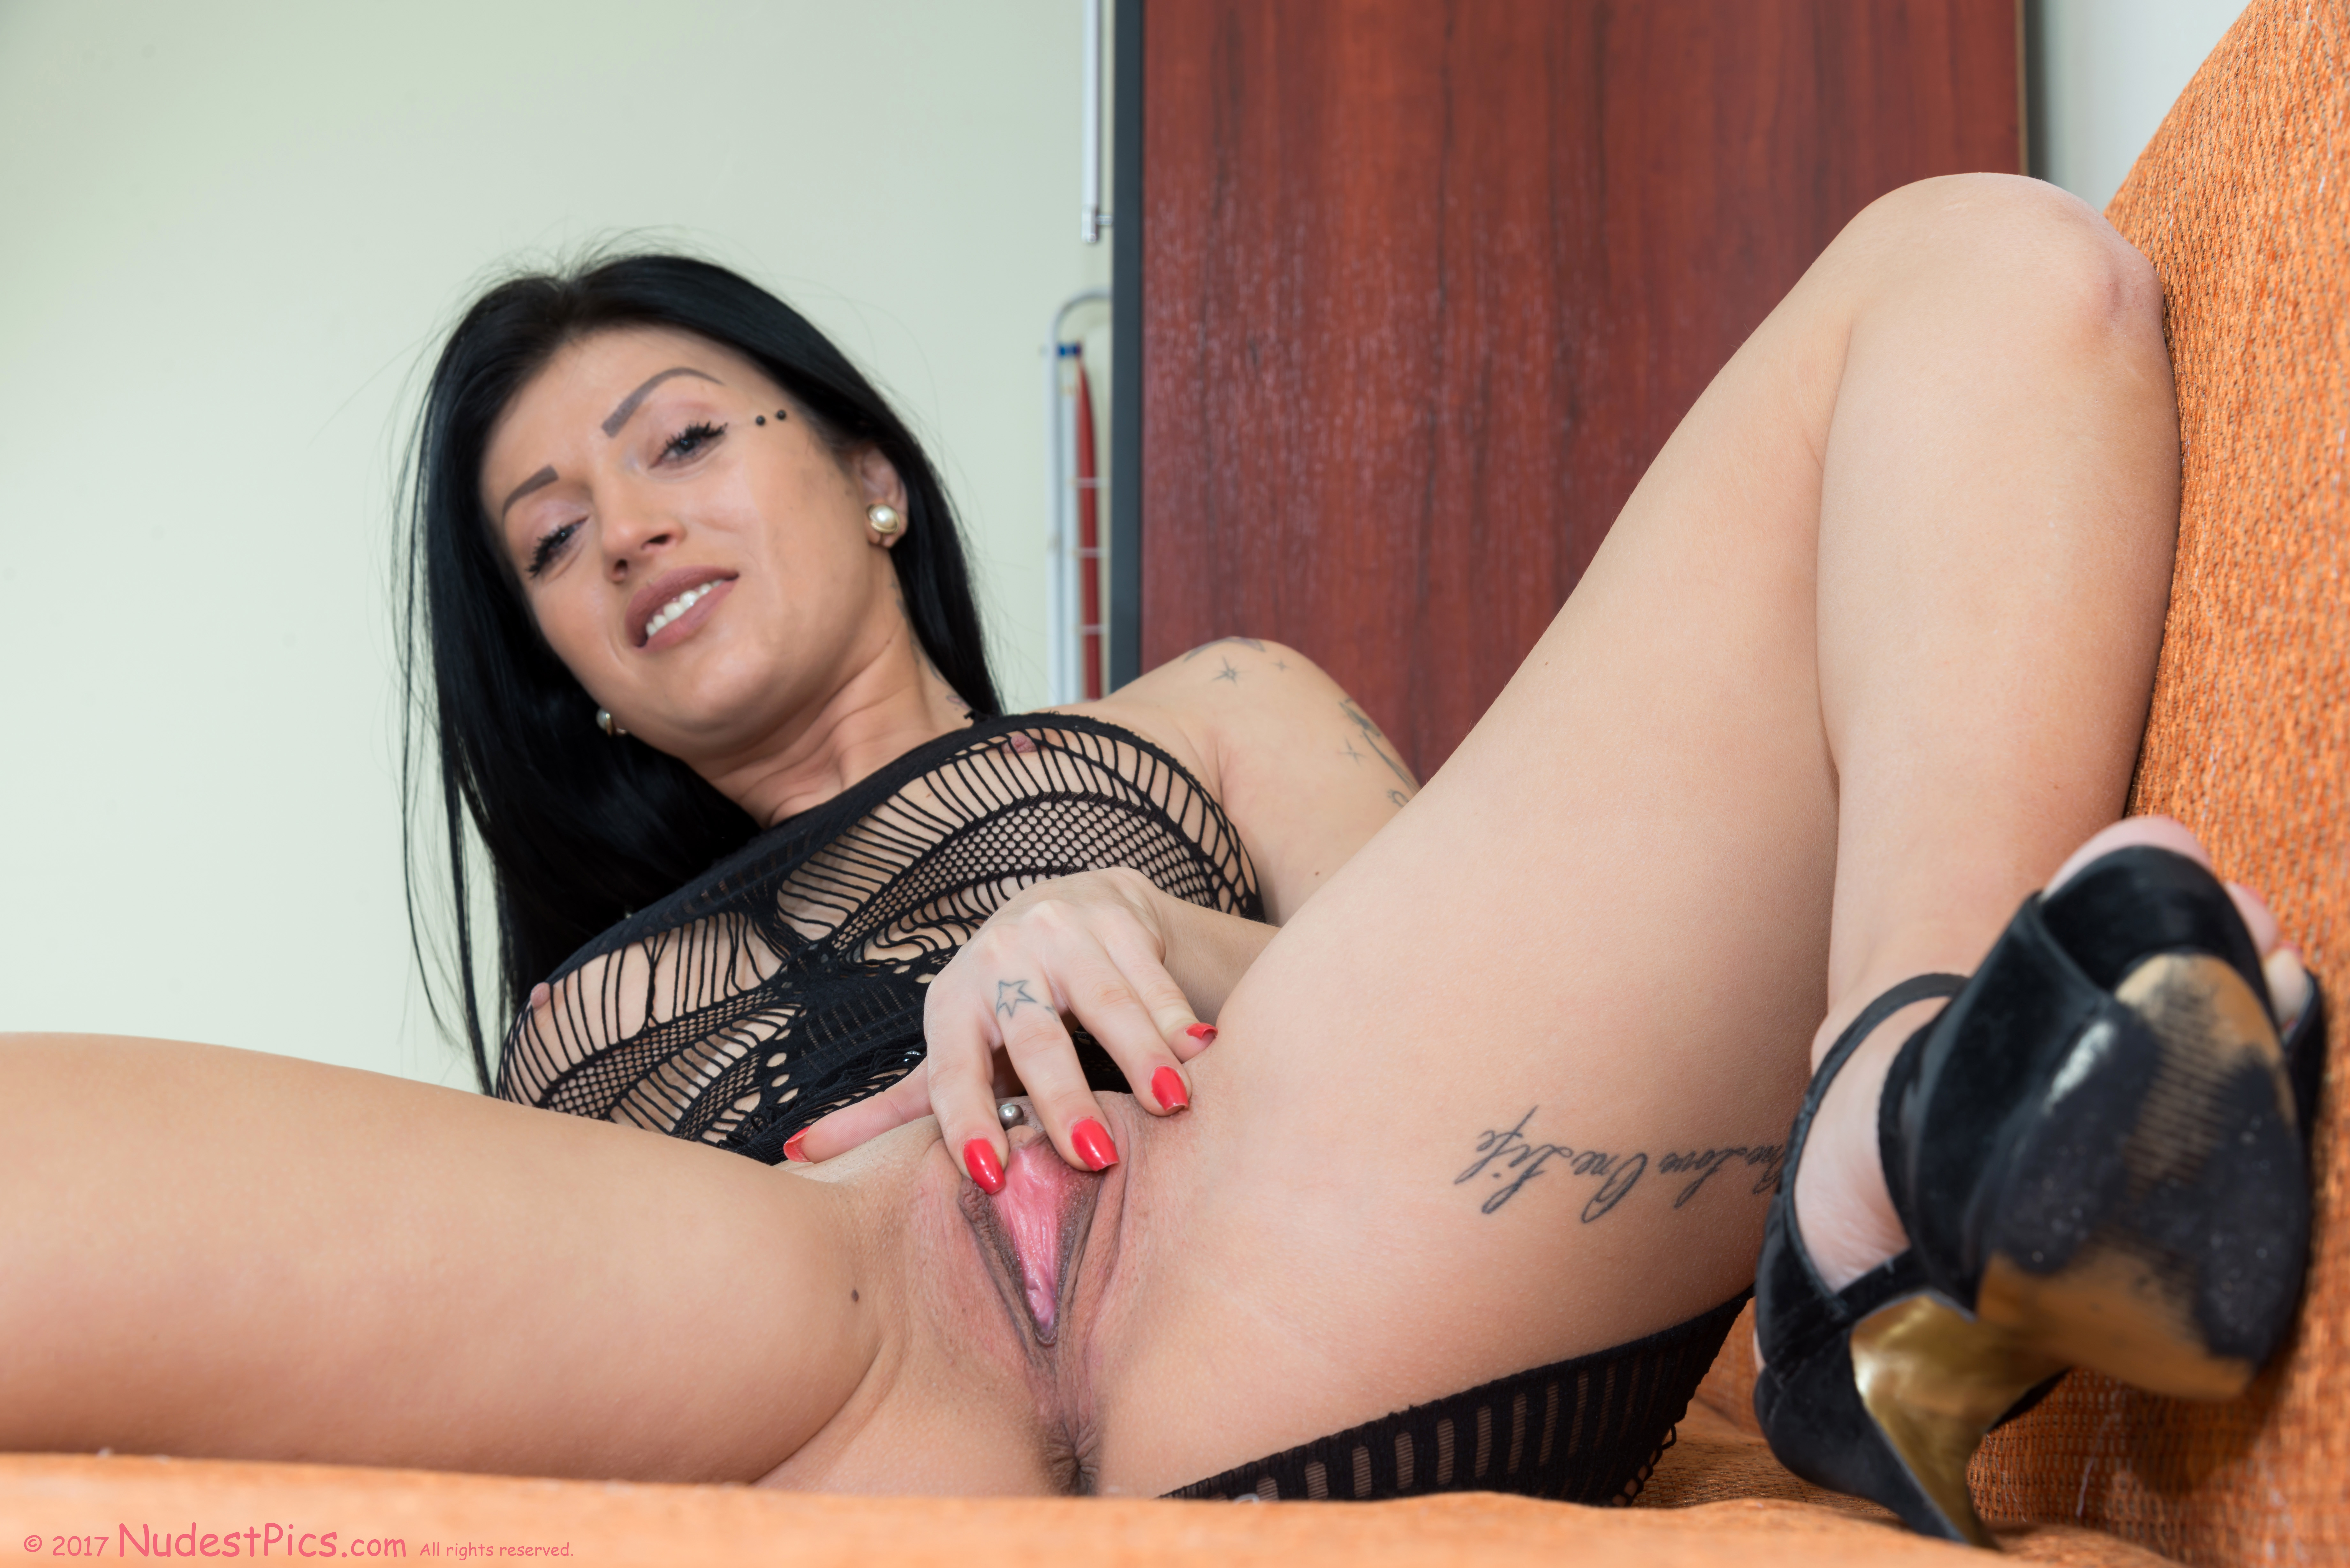 Black Hair Hot Woman Spreading Pink Pussy full HD